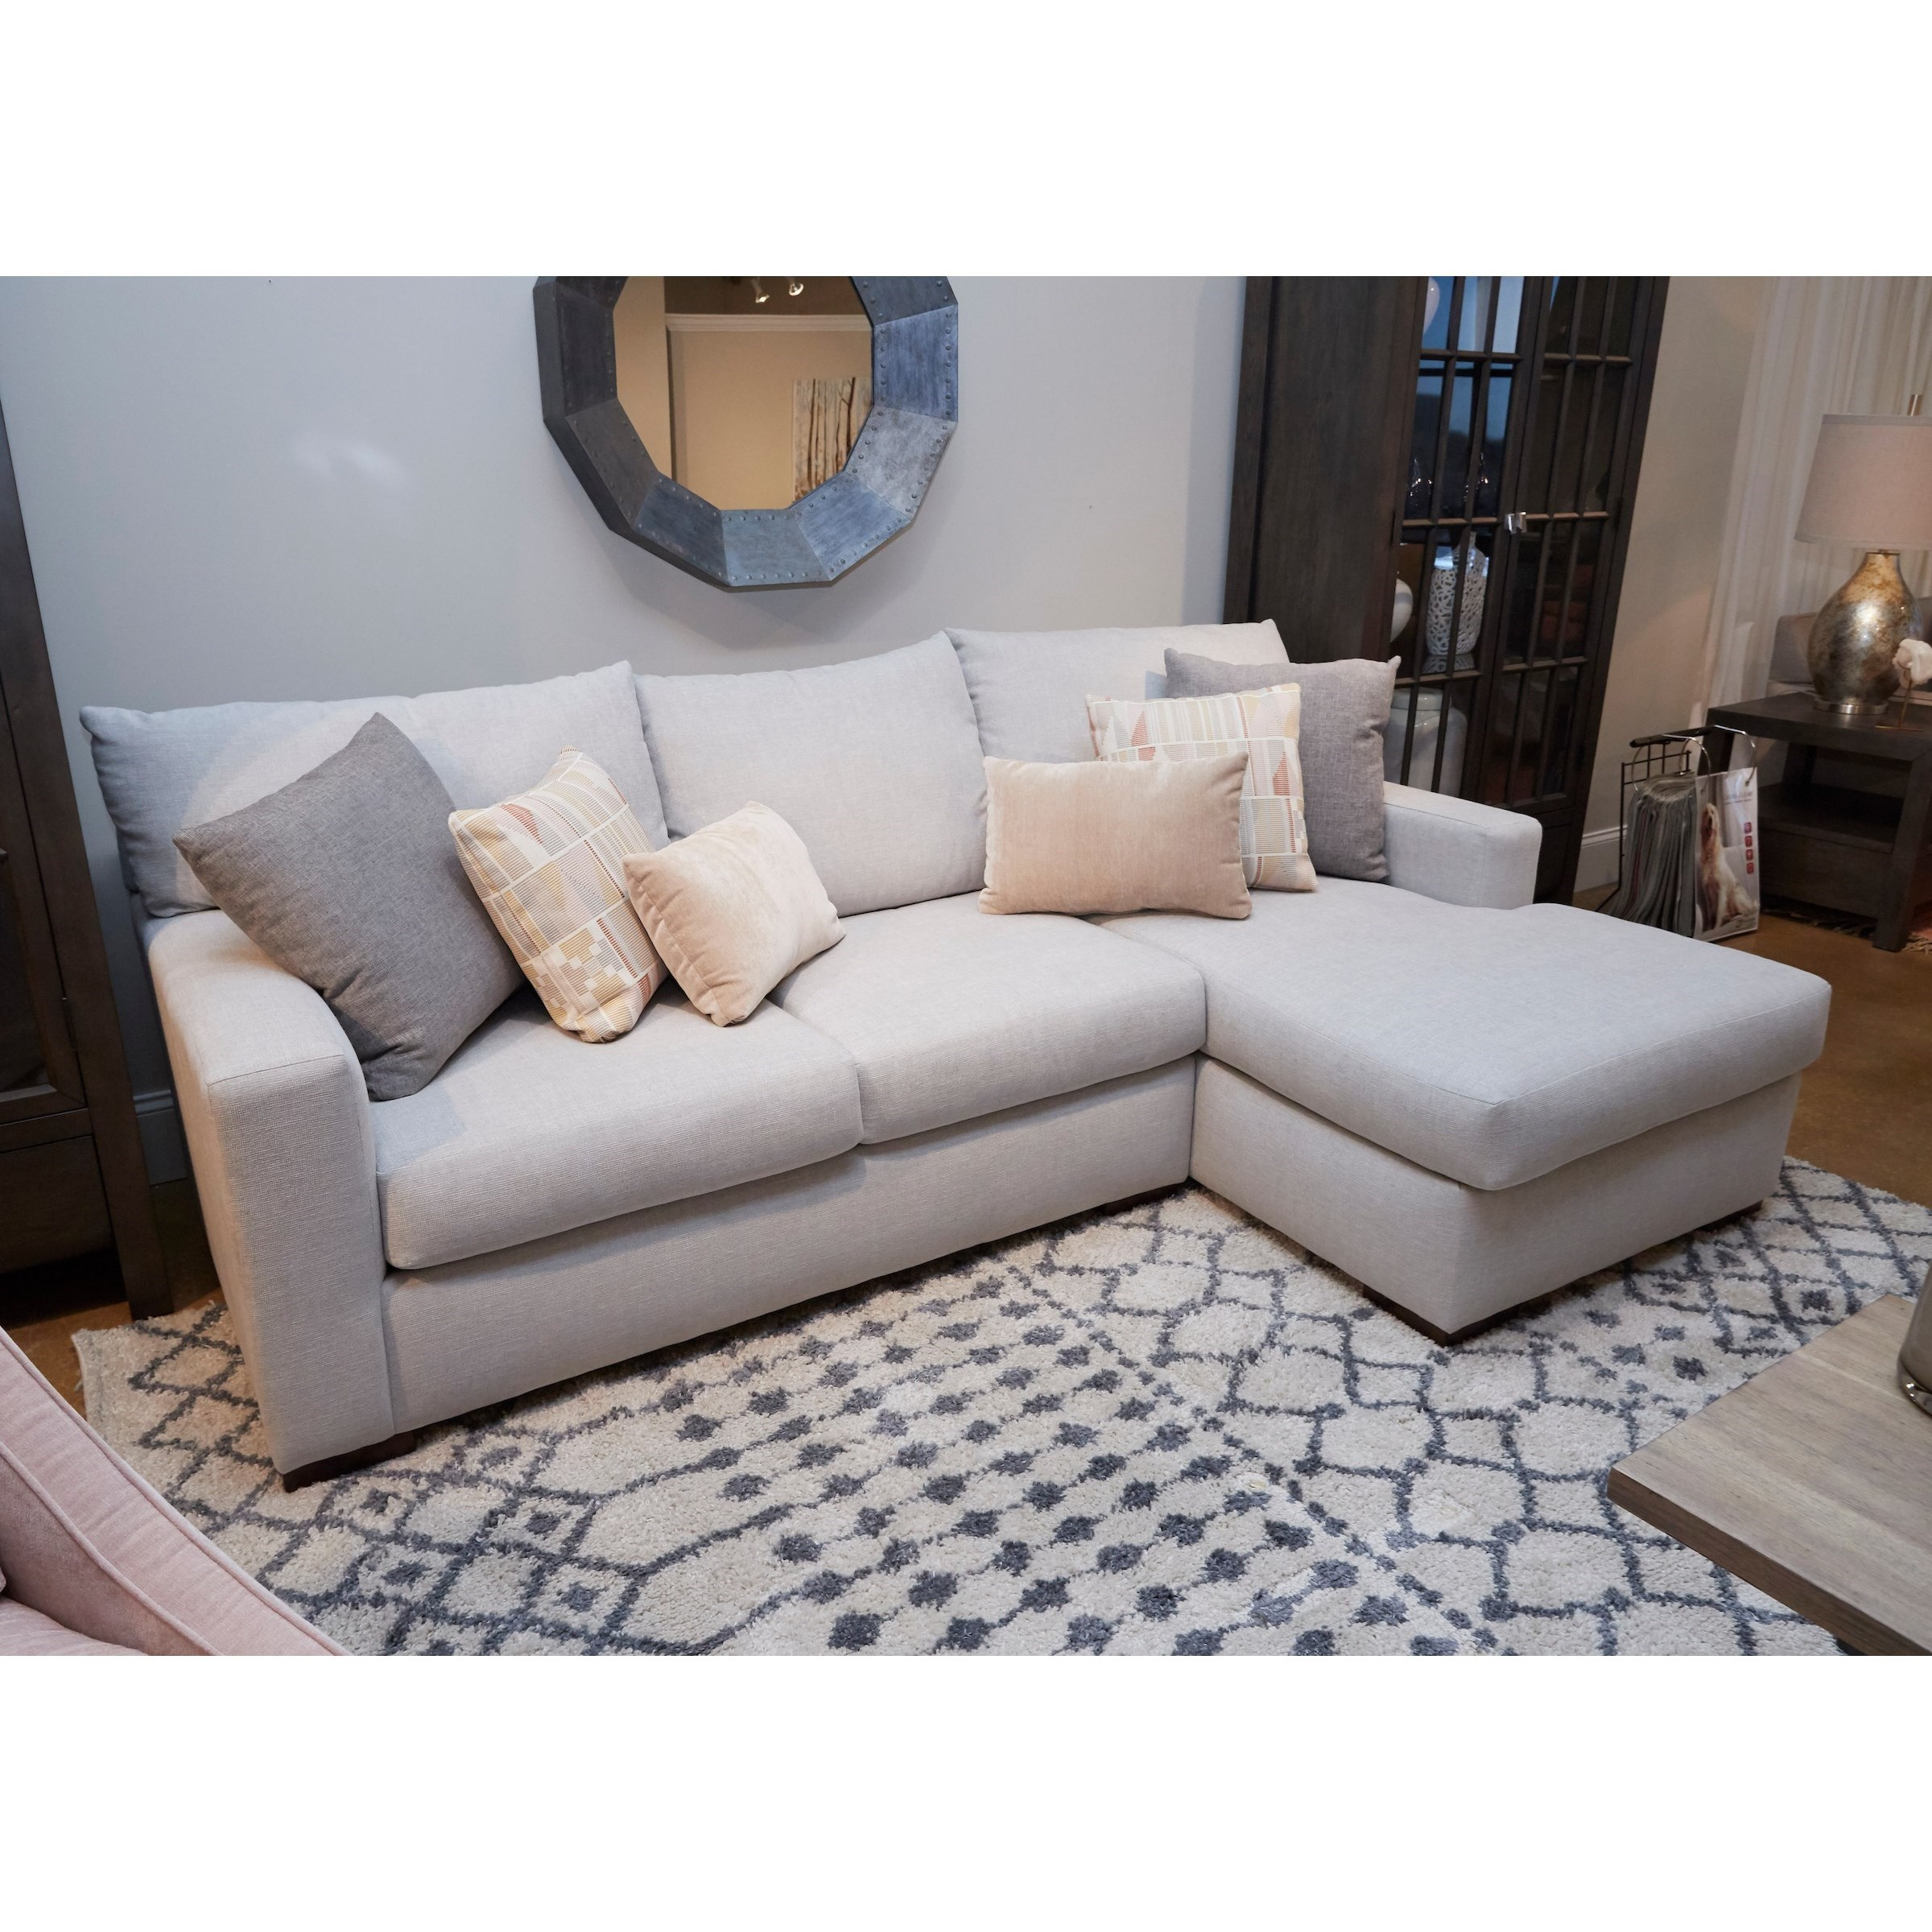 Coley Sectional Sofa with Chaise by Klaussner at Johnny Janosik